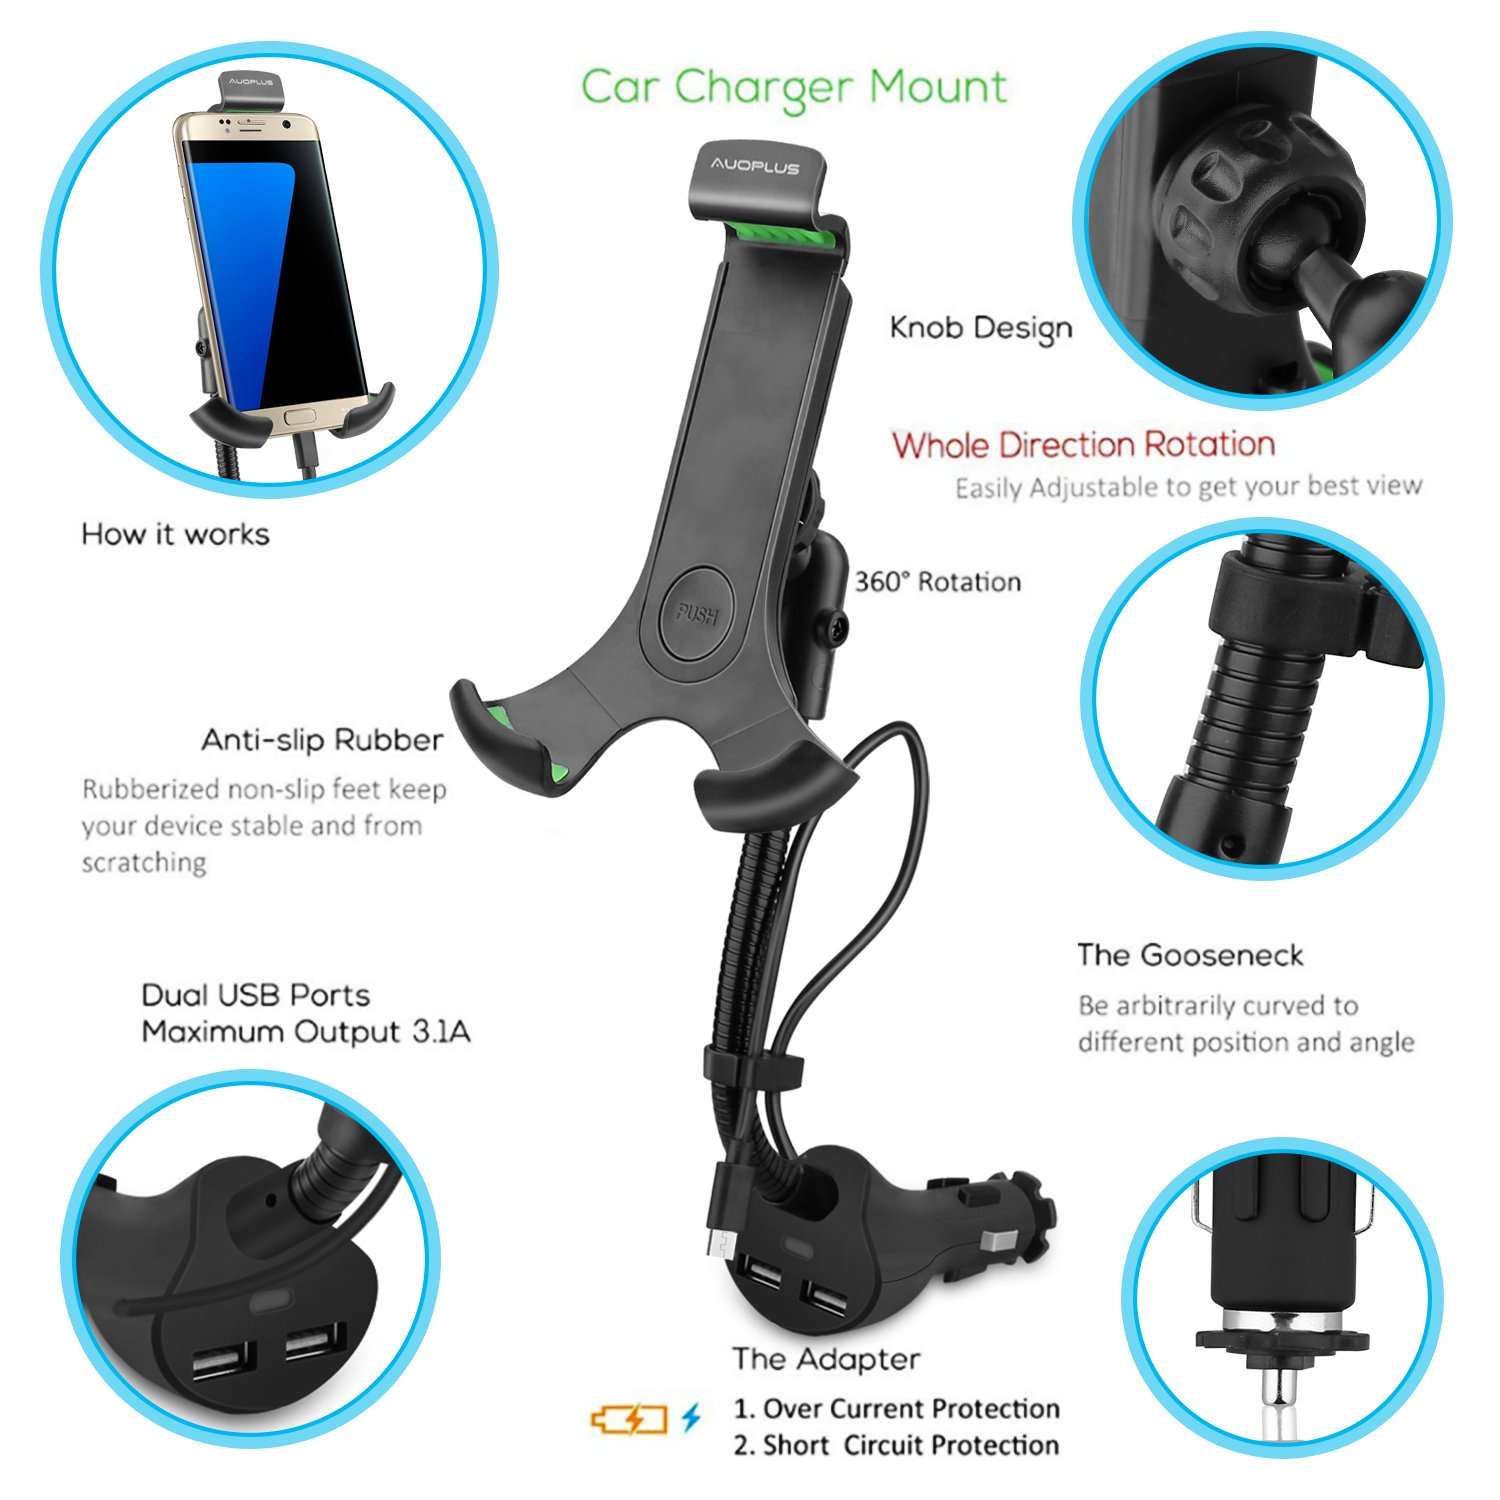 AUOPLUS Gooseneck Car Outlet Mount Cigarette Lighter Phone Holder Charger with Built-in Charging Cord for Samsung Galaxy and More Android Smartphones by AUOPLUS (Image #3)